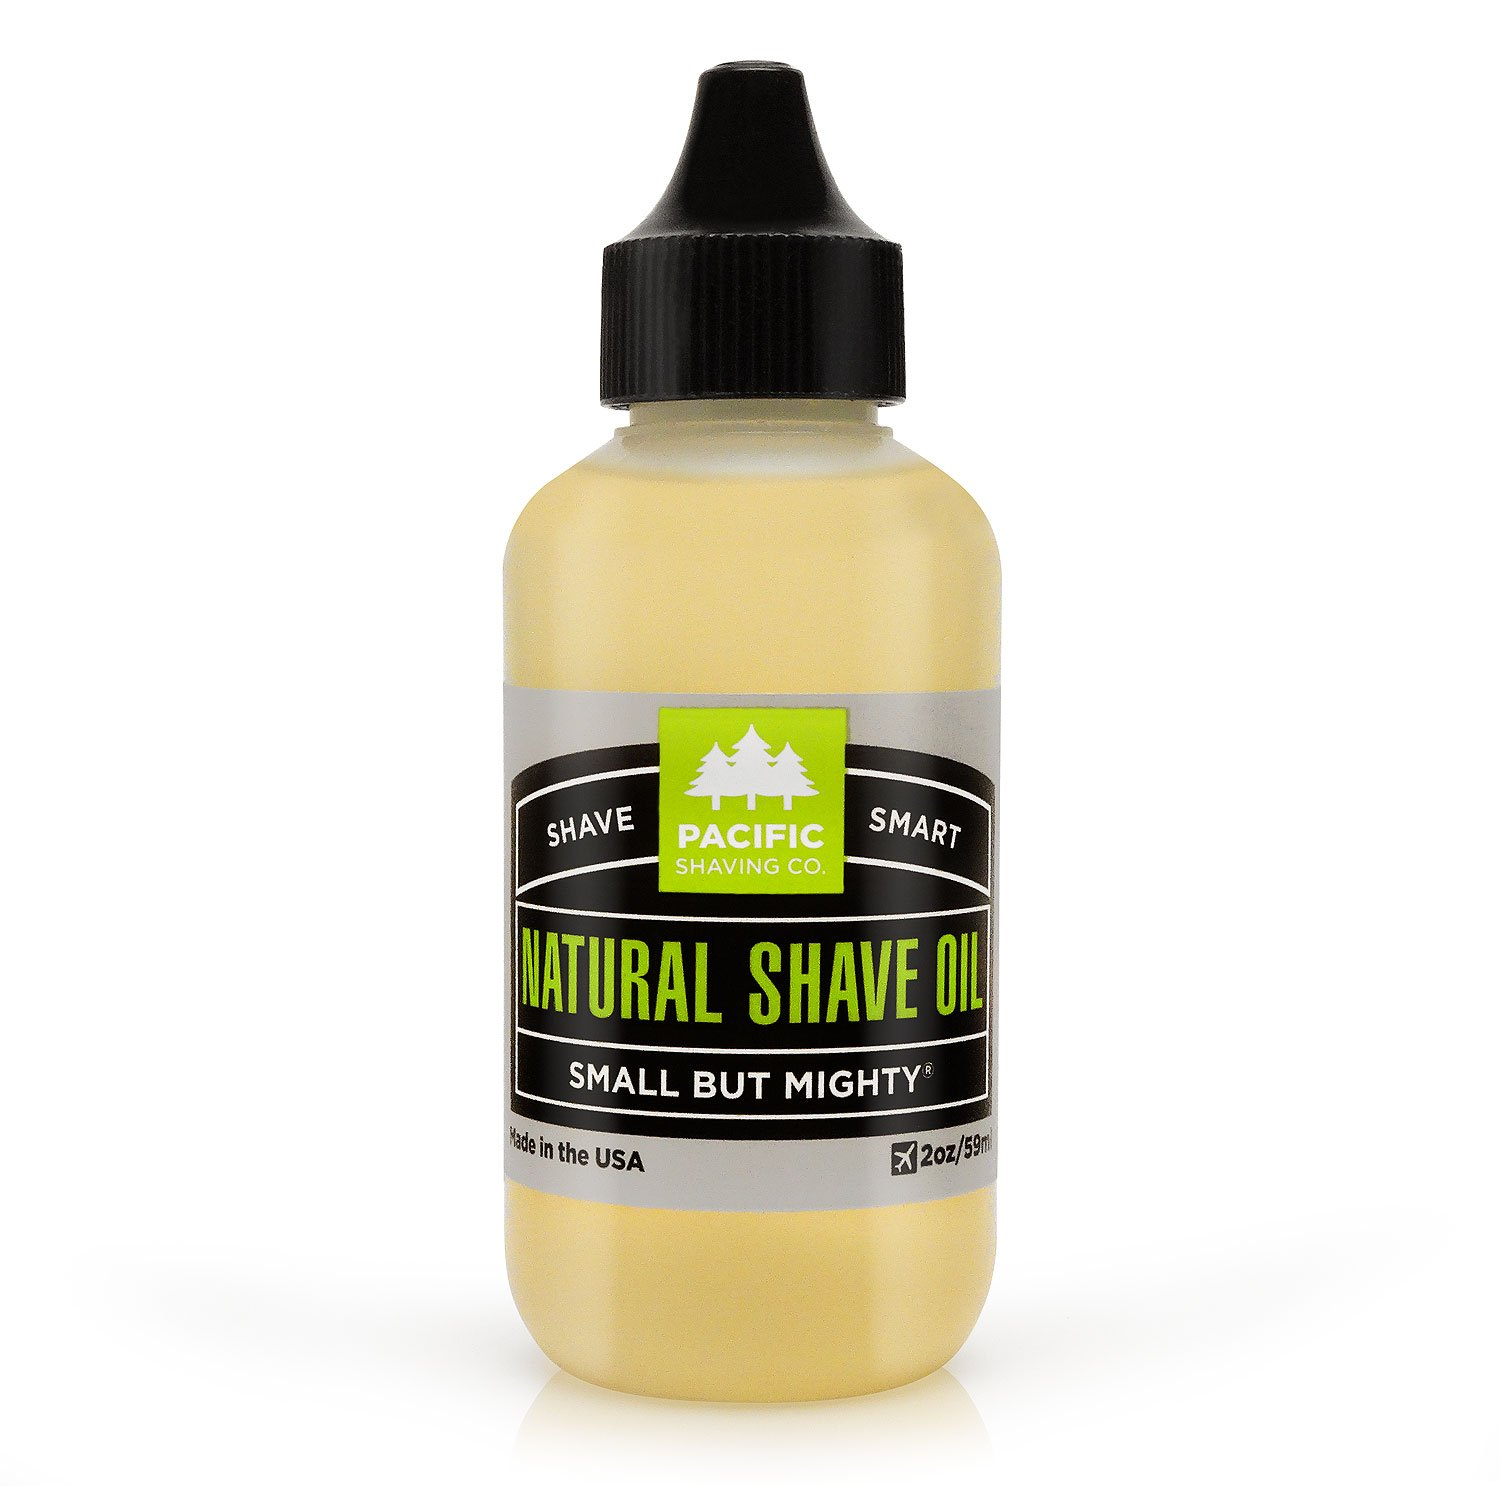 Pacific Shaving Company Natural Shaving Oil - Eliminates Cuts, Nicks, Razor Burn, Soothes & Moisturizes Skin, Reduces Irritation, with Safe, Natural & Organic Ingredients, Made in USA, 2 oz